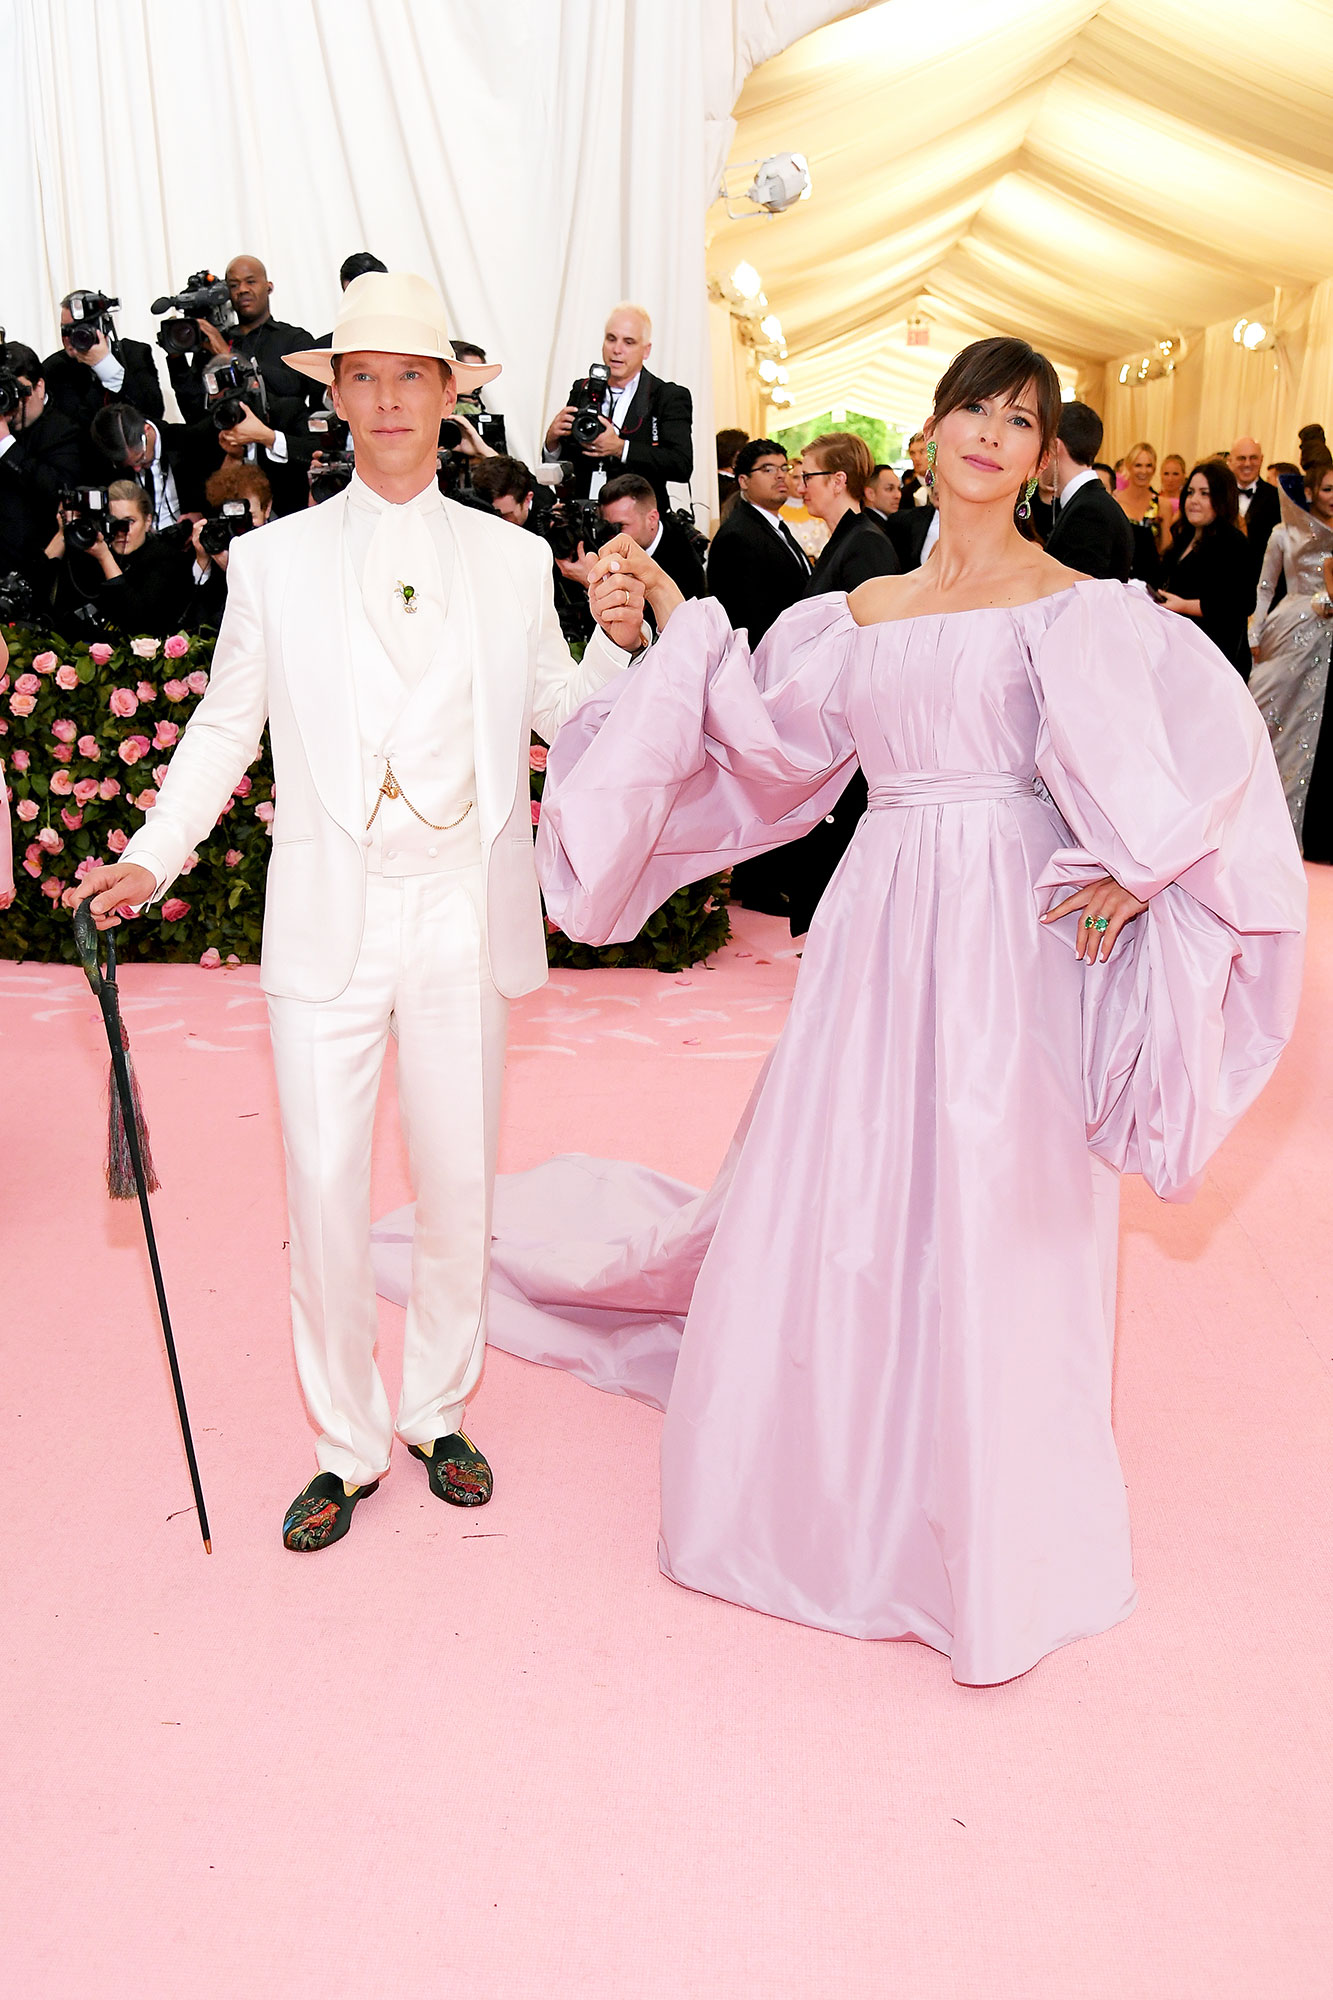 Benedict Cumberbatch and Sophie Hunter met gala 2019 couples - It may have been Monday, but the husband and wife duo were all about the #TBT vibes in their period pieces.